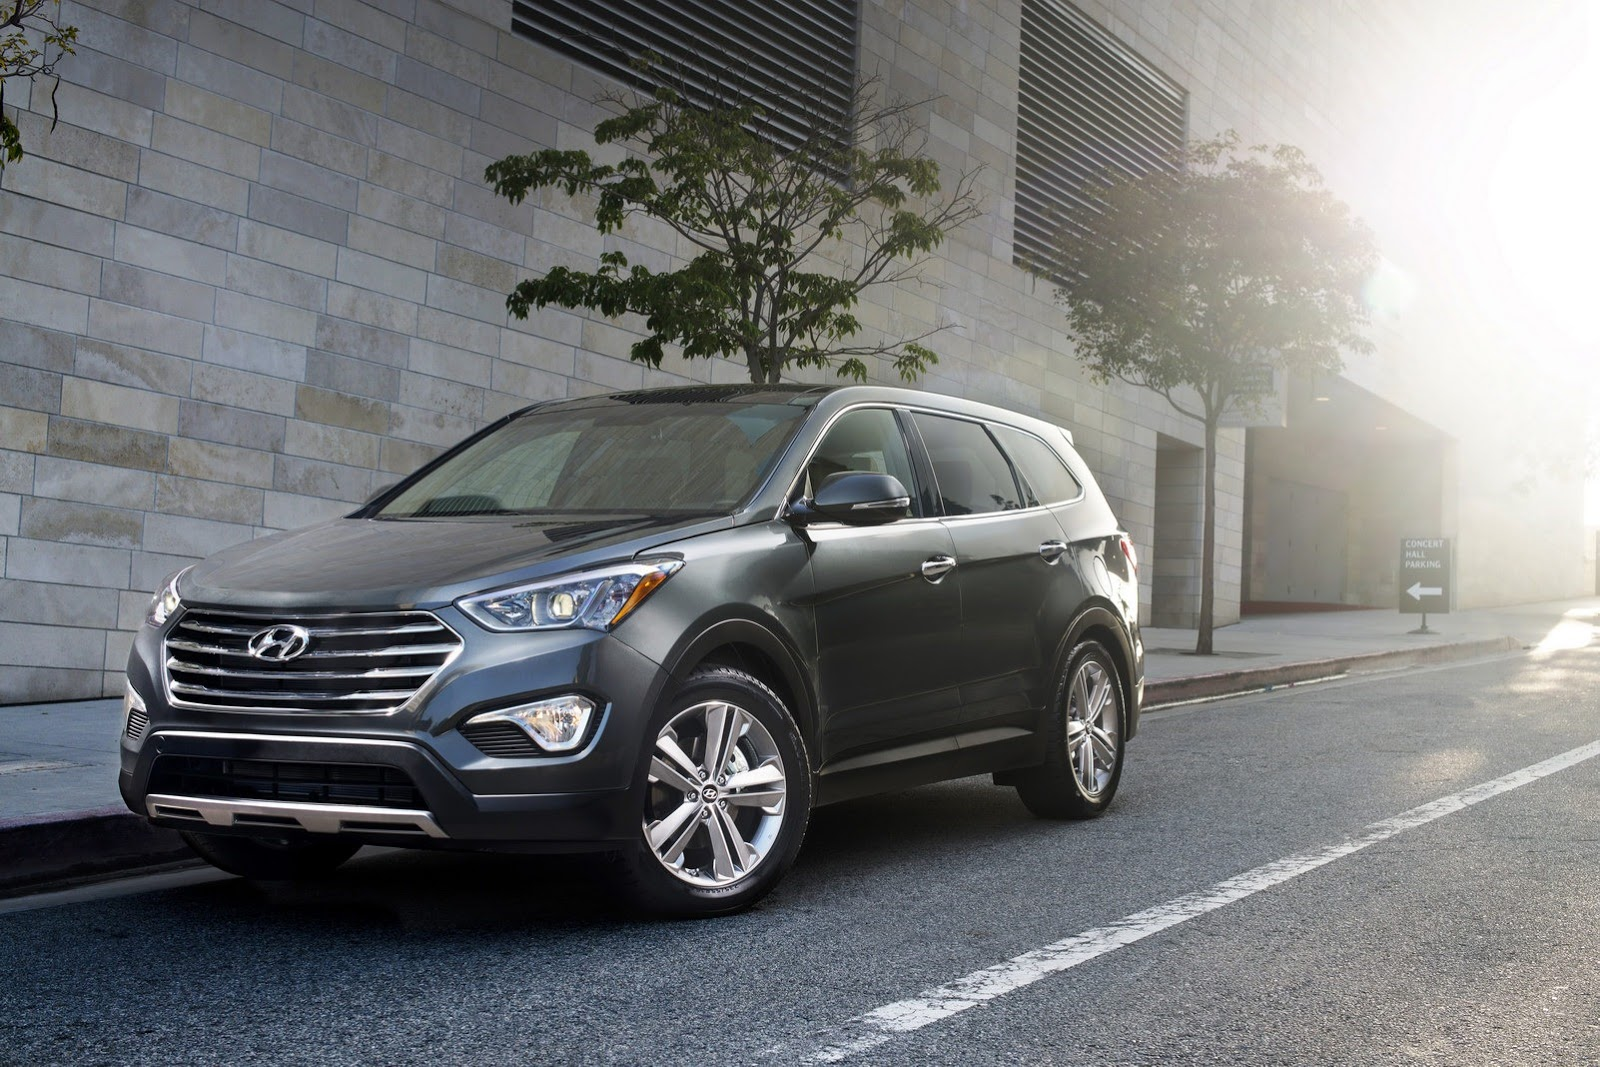 Hyundai officially unveils the 2013 Santa Fe